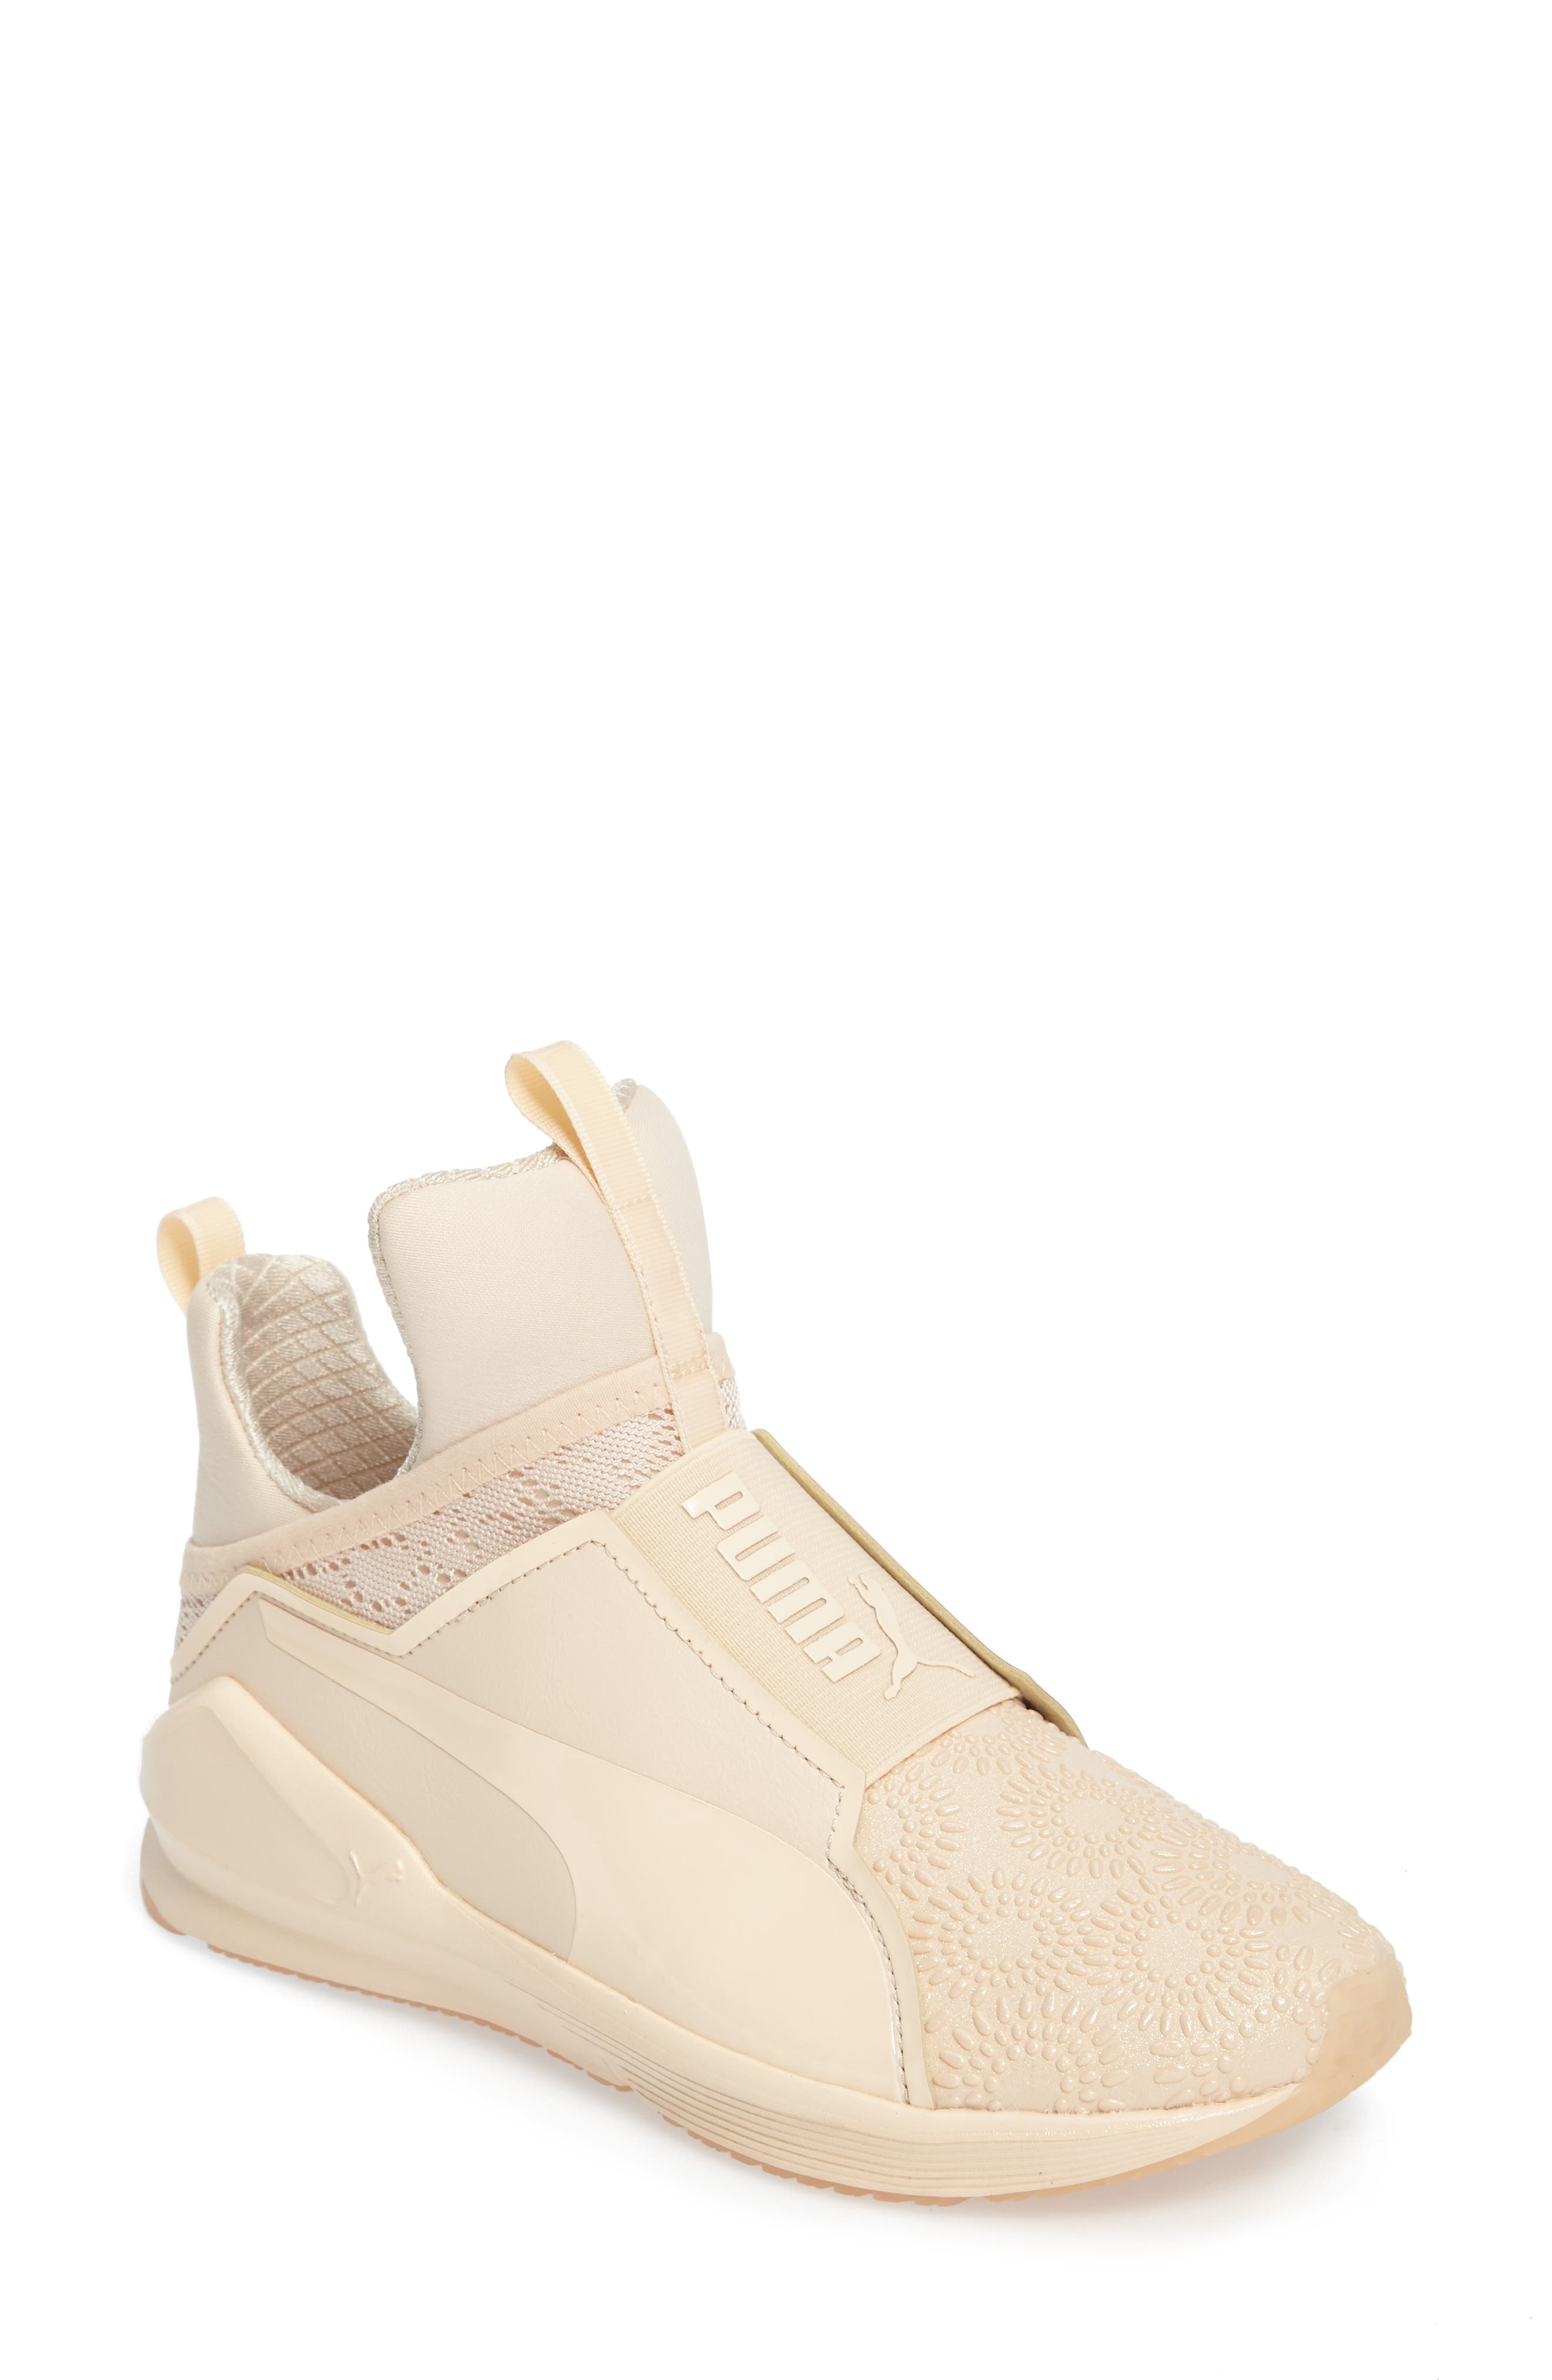 PUMA Fierce KRM High Top Sneaker (Women)